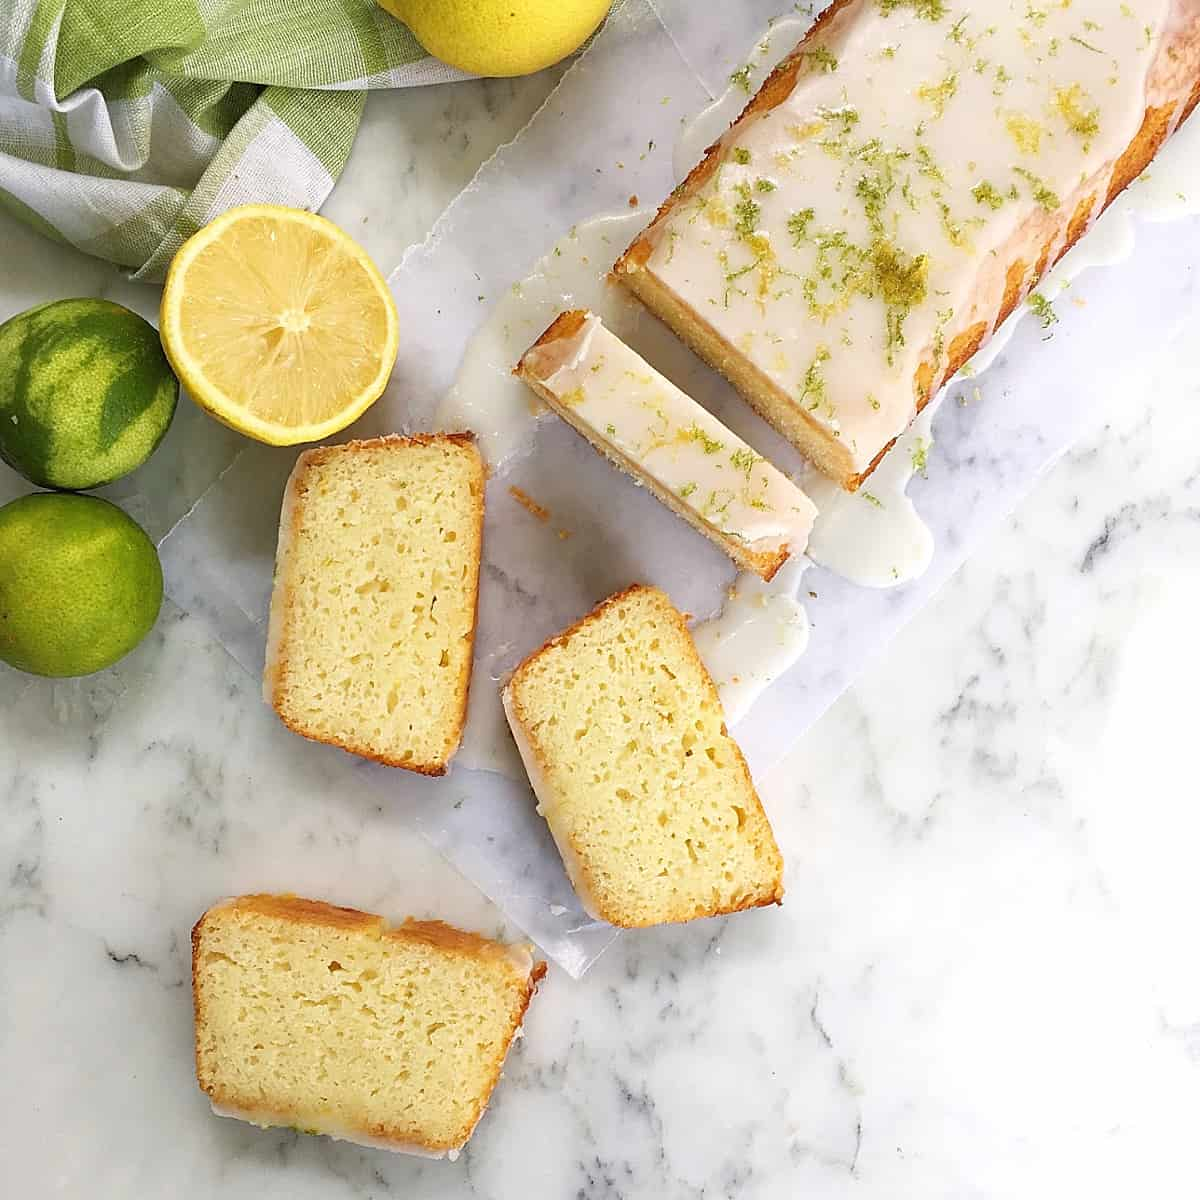 Half loaf cake on white marble surface, cut slices, lemons and limes around